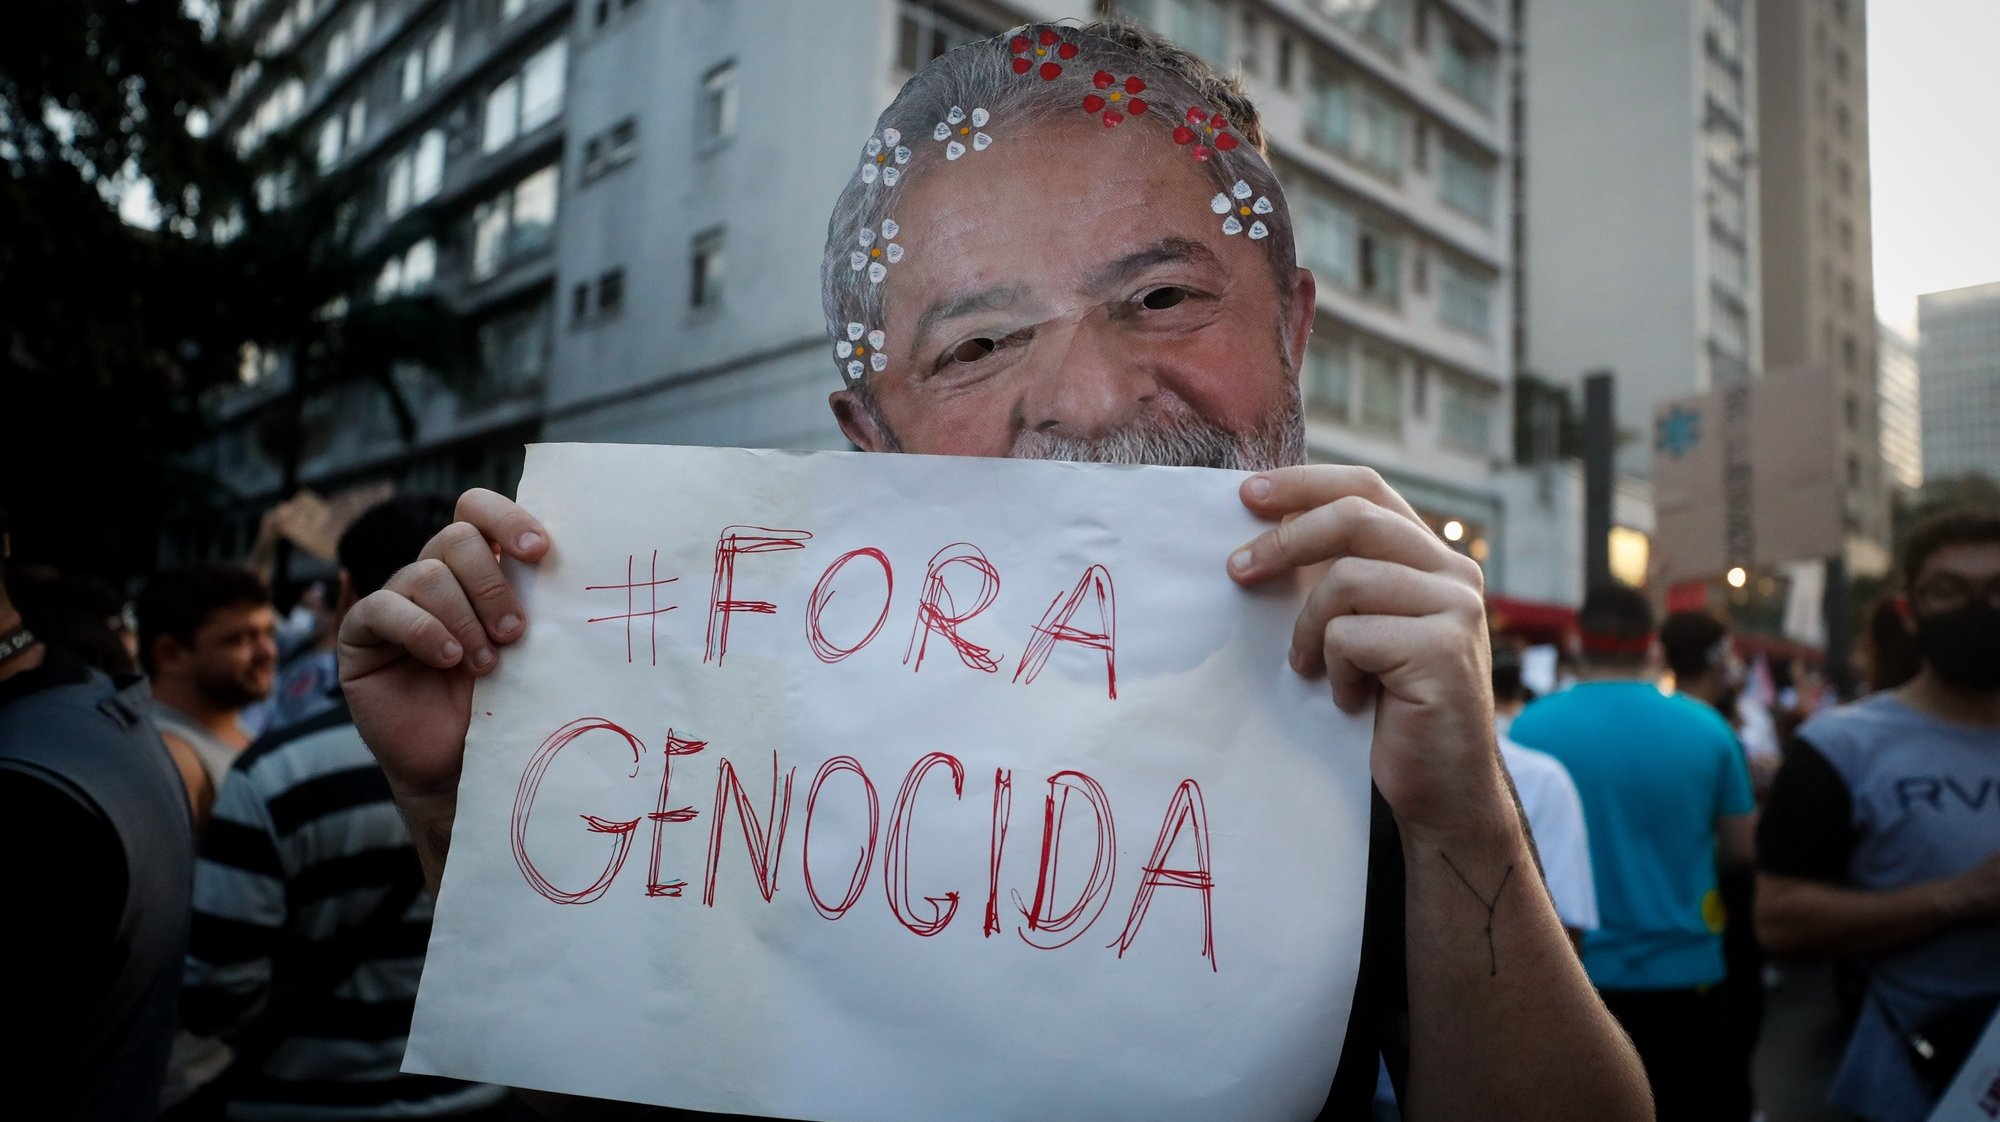 epa09236293 A man wearing a mask of former Brazilian President Luiz Inacio Lula da Silva holds a placard reading '#Out, Genocidal' during a protest against Brazilian President Jair Bolsonaro and his handling of the COVID-19 pandemic crisis, in Sao Paulo, Brazil, 29 May 2021.  EPA/Fernando Bizerra